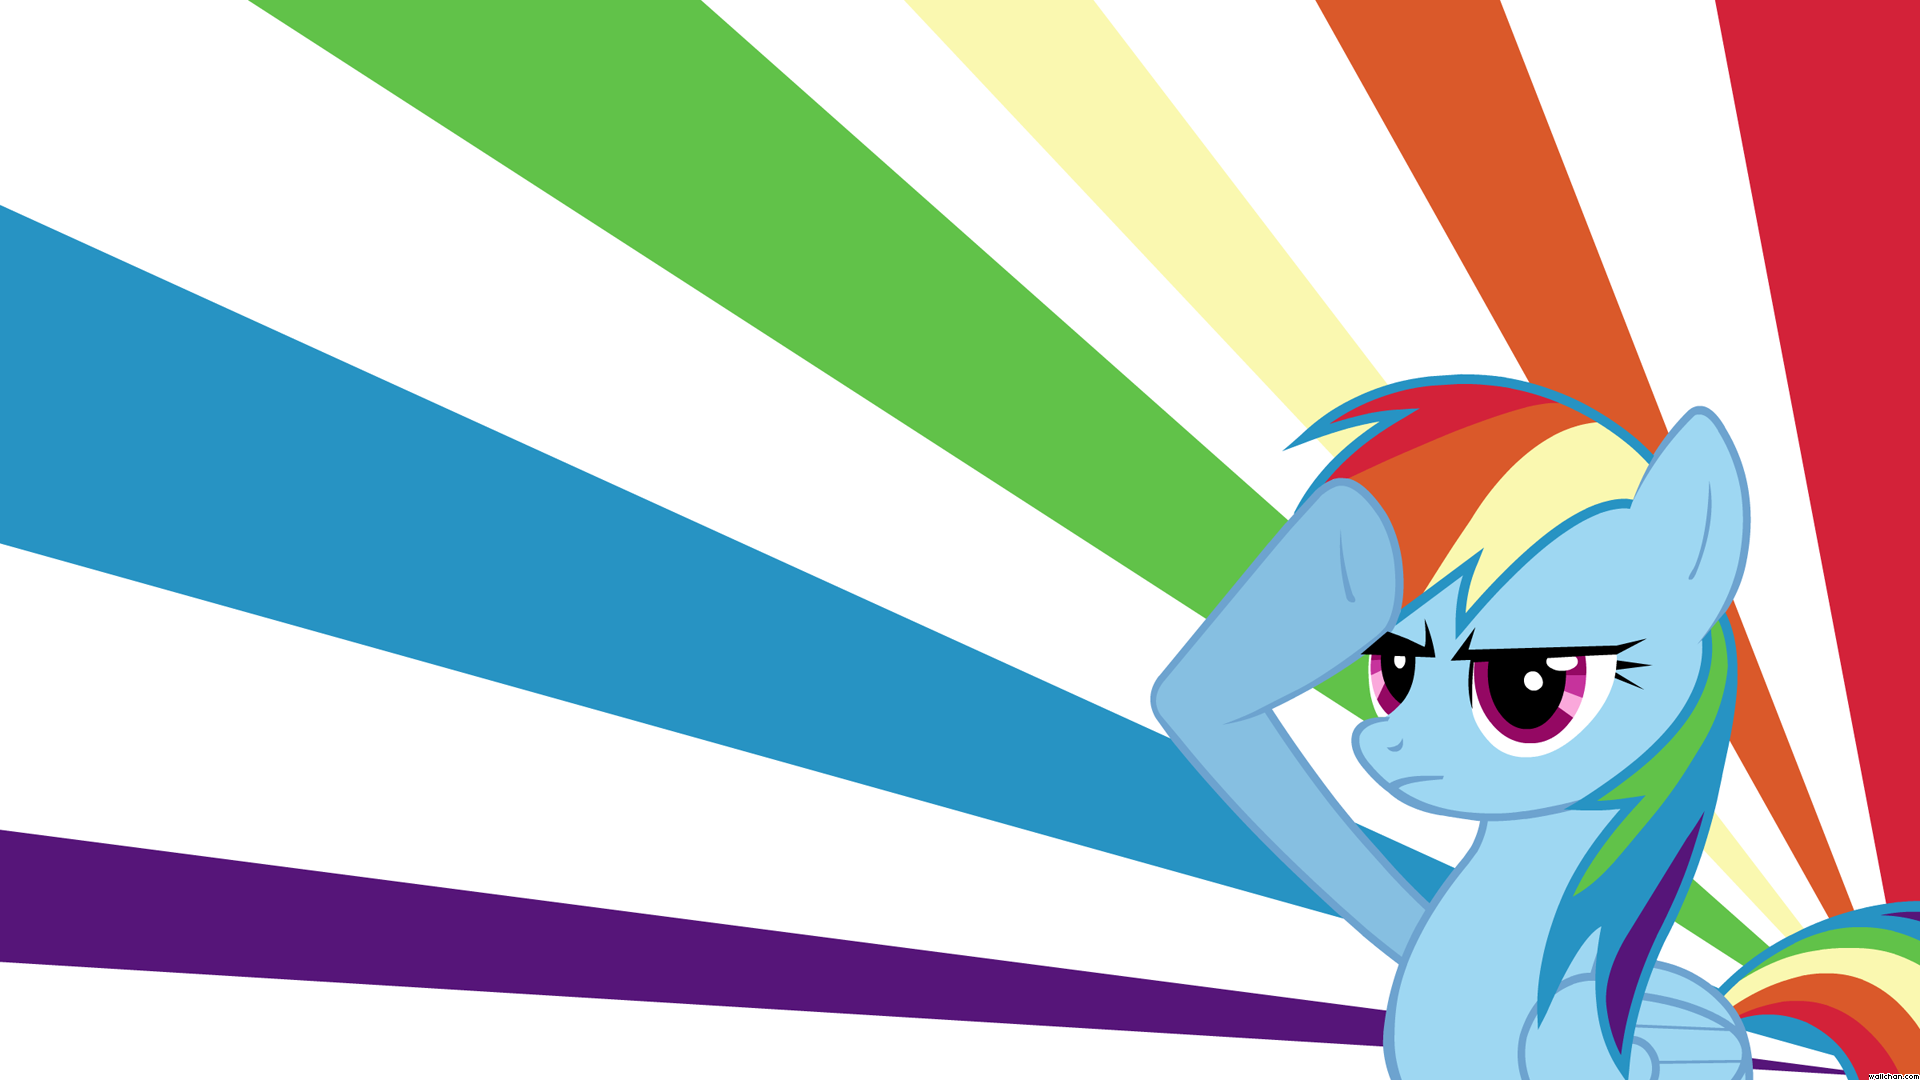 Rainbow My Little Pony Backgrounds